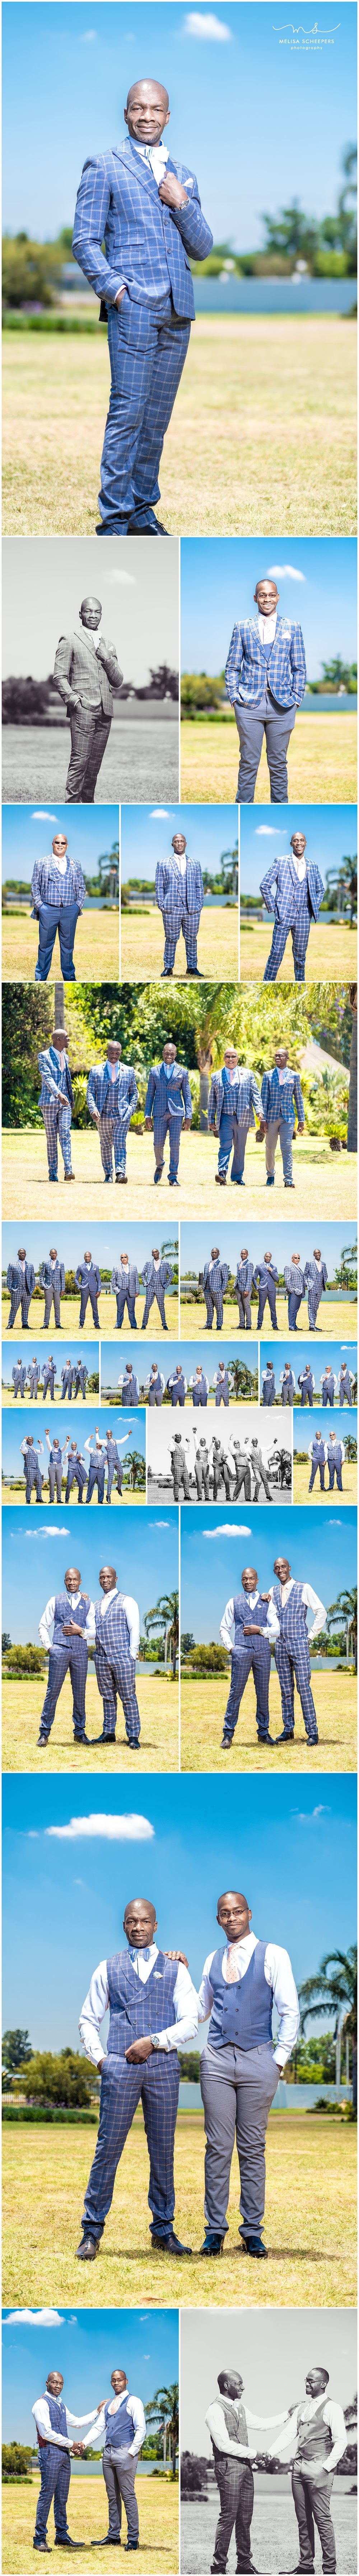 Abie and the groomsmen